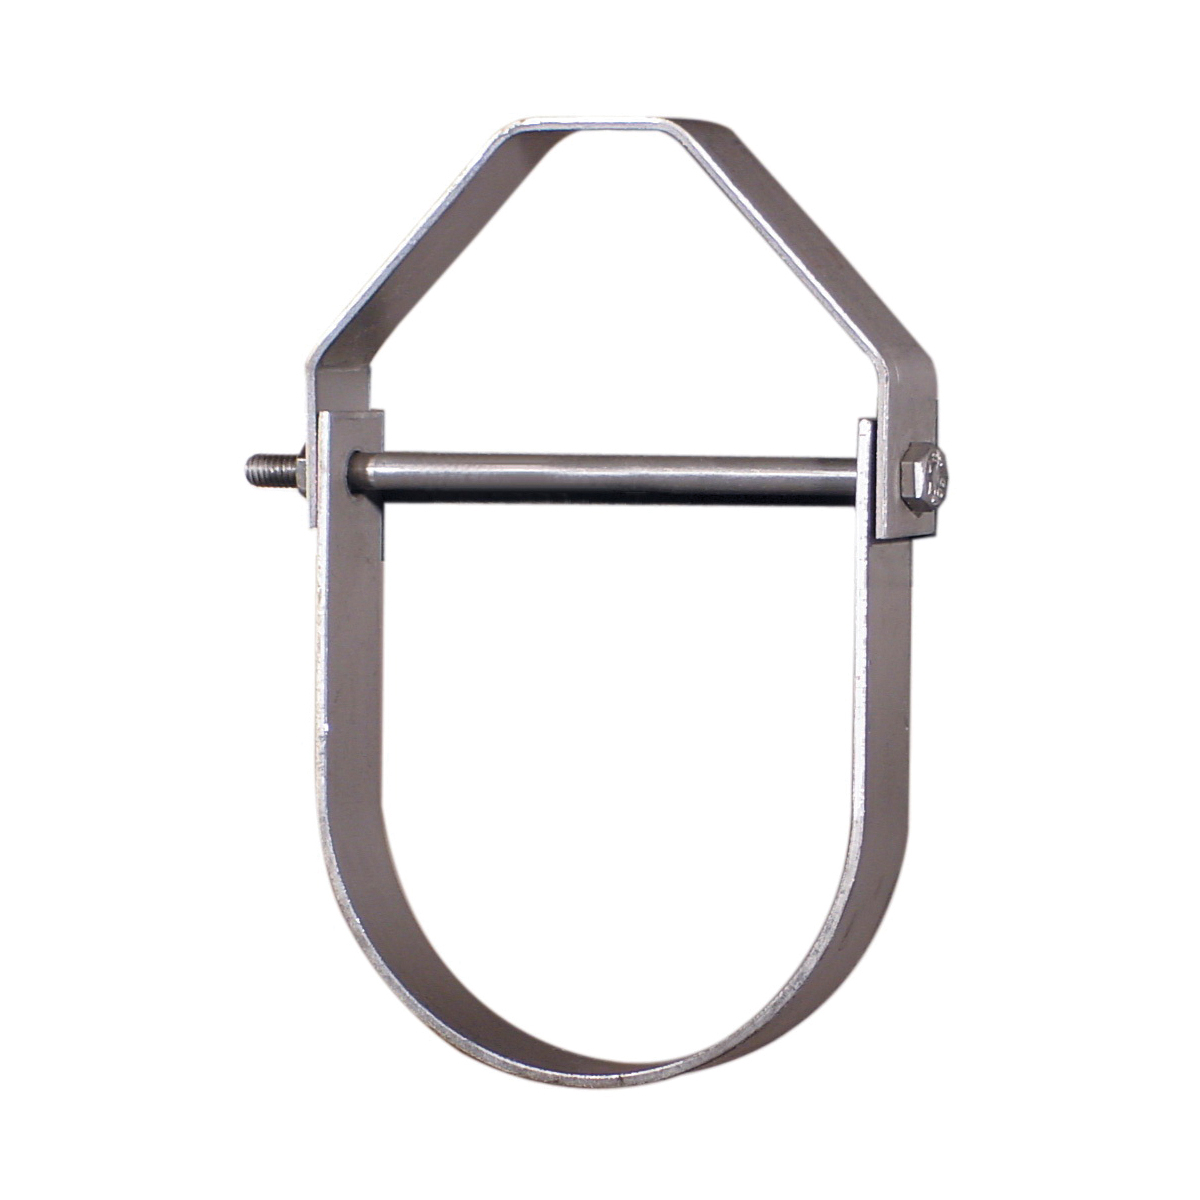 Anvil® 0560299828 FIG 65 Adjustable Clevis Hanger, 3/4 in Pipe, 3/8 in Rod, 250 lb Load, Carbon Steel, Galvanized